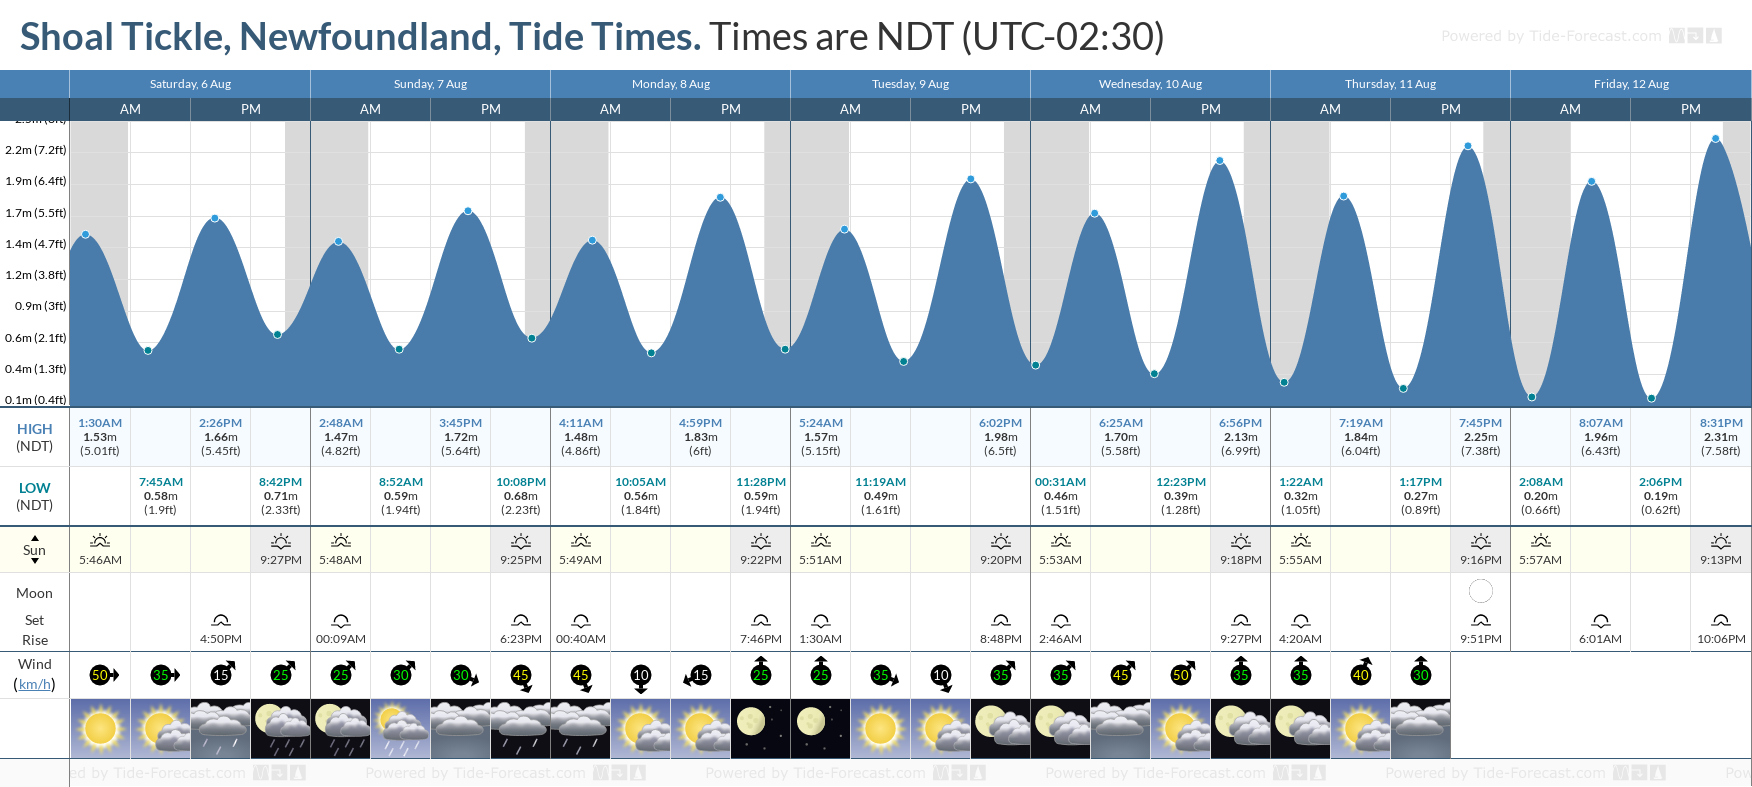 Shoal Tickle, Newfoundland Tide Chart including high and low tide tide times for the next 7 days